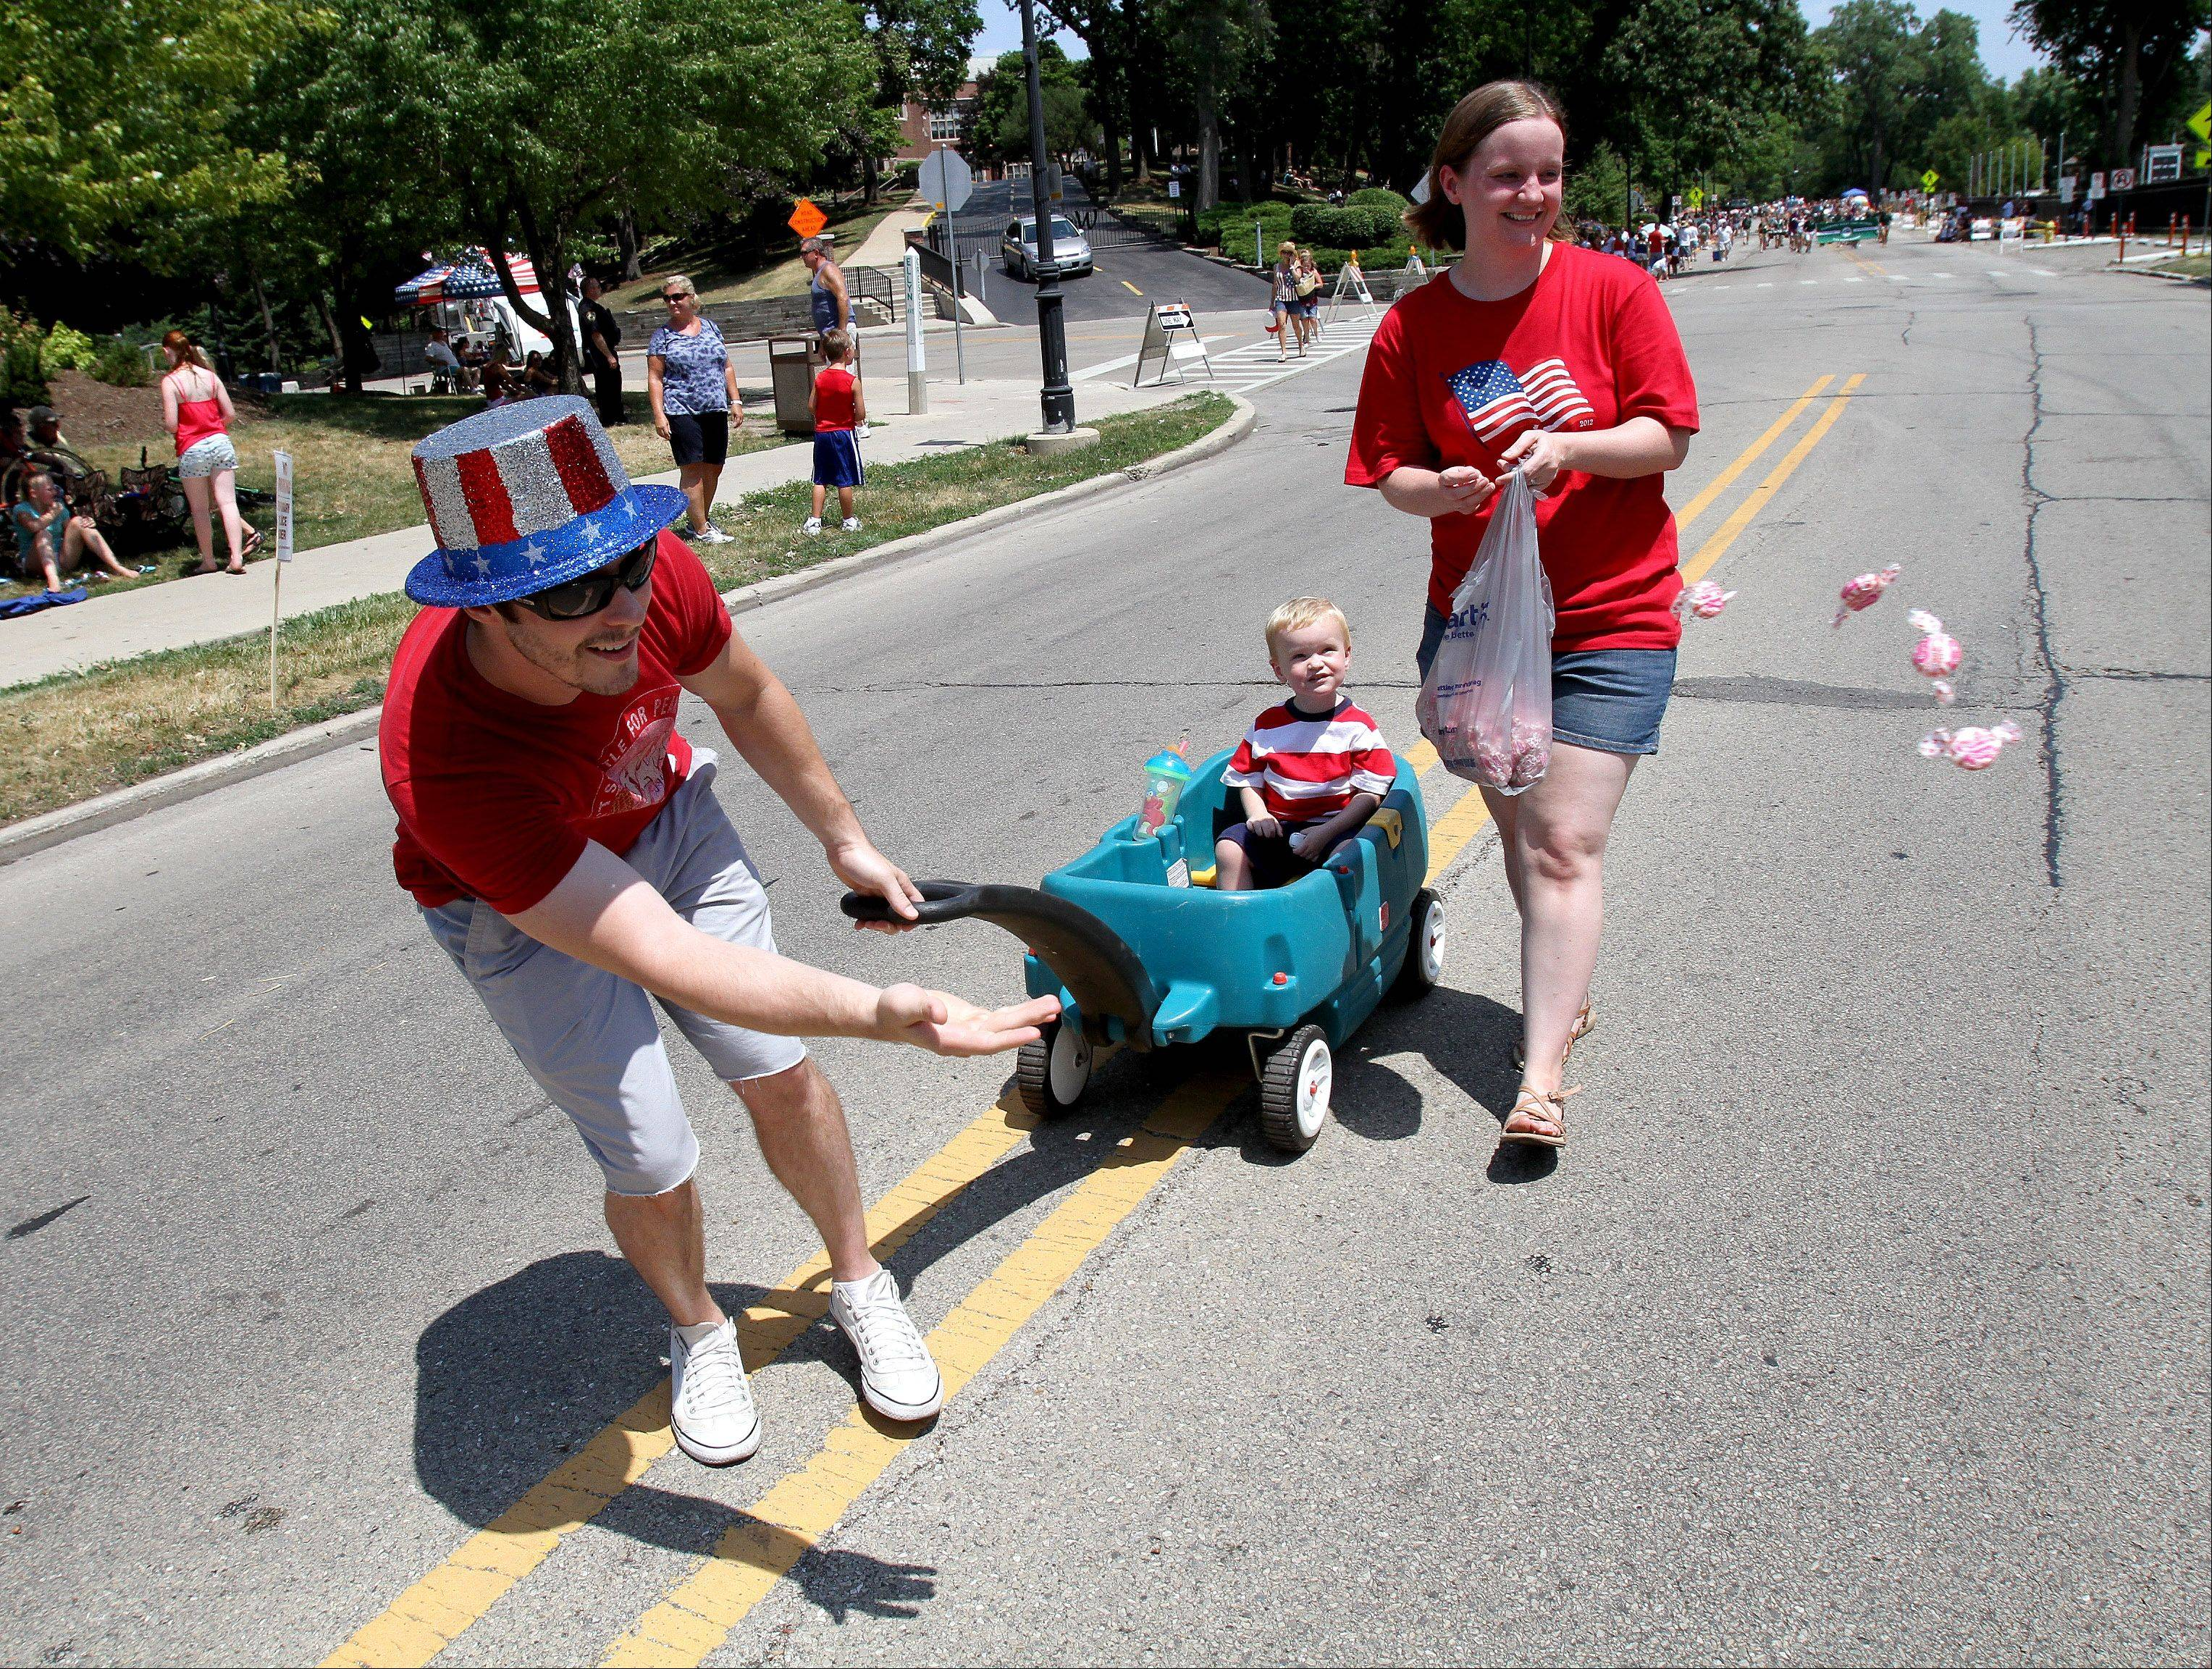 Michael Chrissy from Gigi's Playhouse throws out some candy as he and Erin Gunsteen with Emmett Gunsteen, 2, take part in the 4th of July parade in Glen Ellyn on Wednesday.